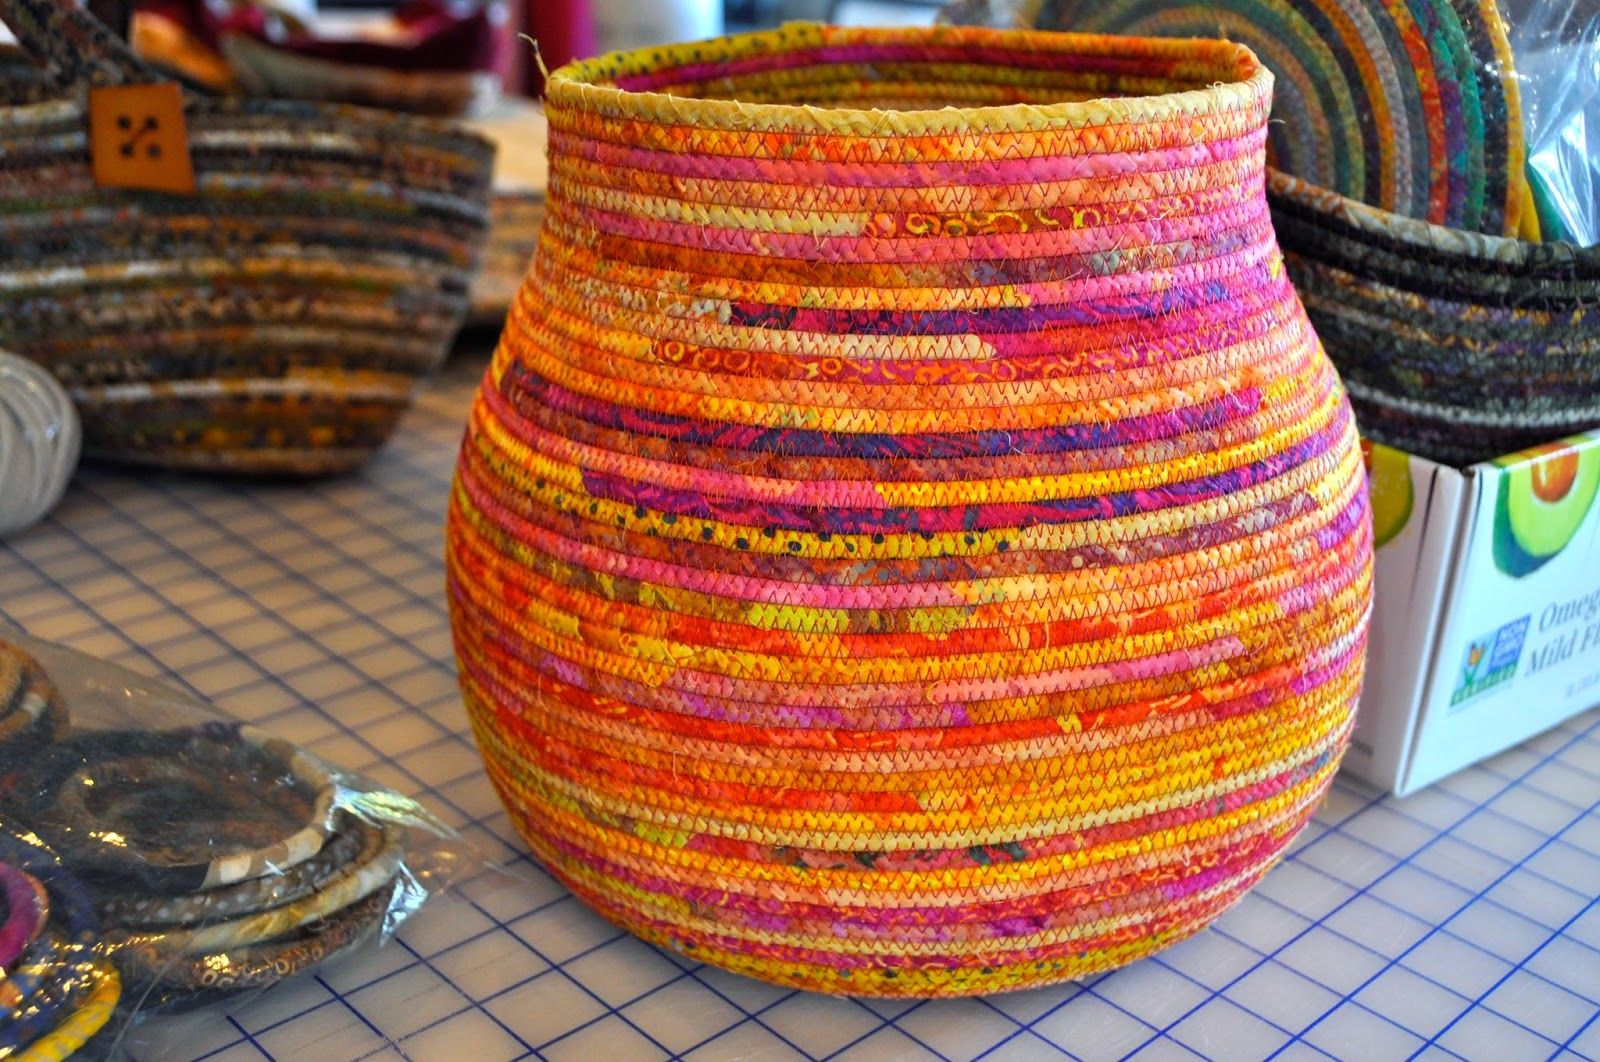 Fabric Wrapped Over Clothesline Baskets Fabric Studio